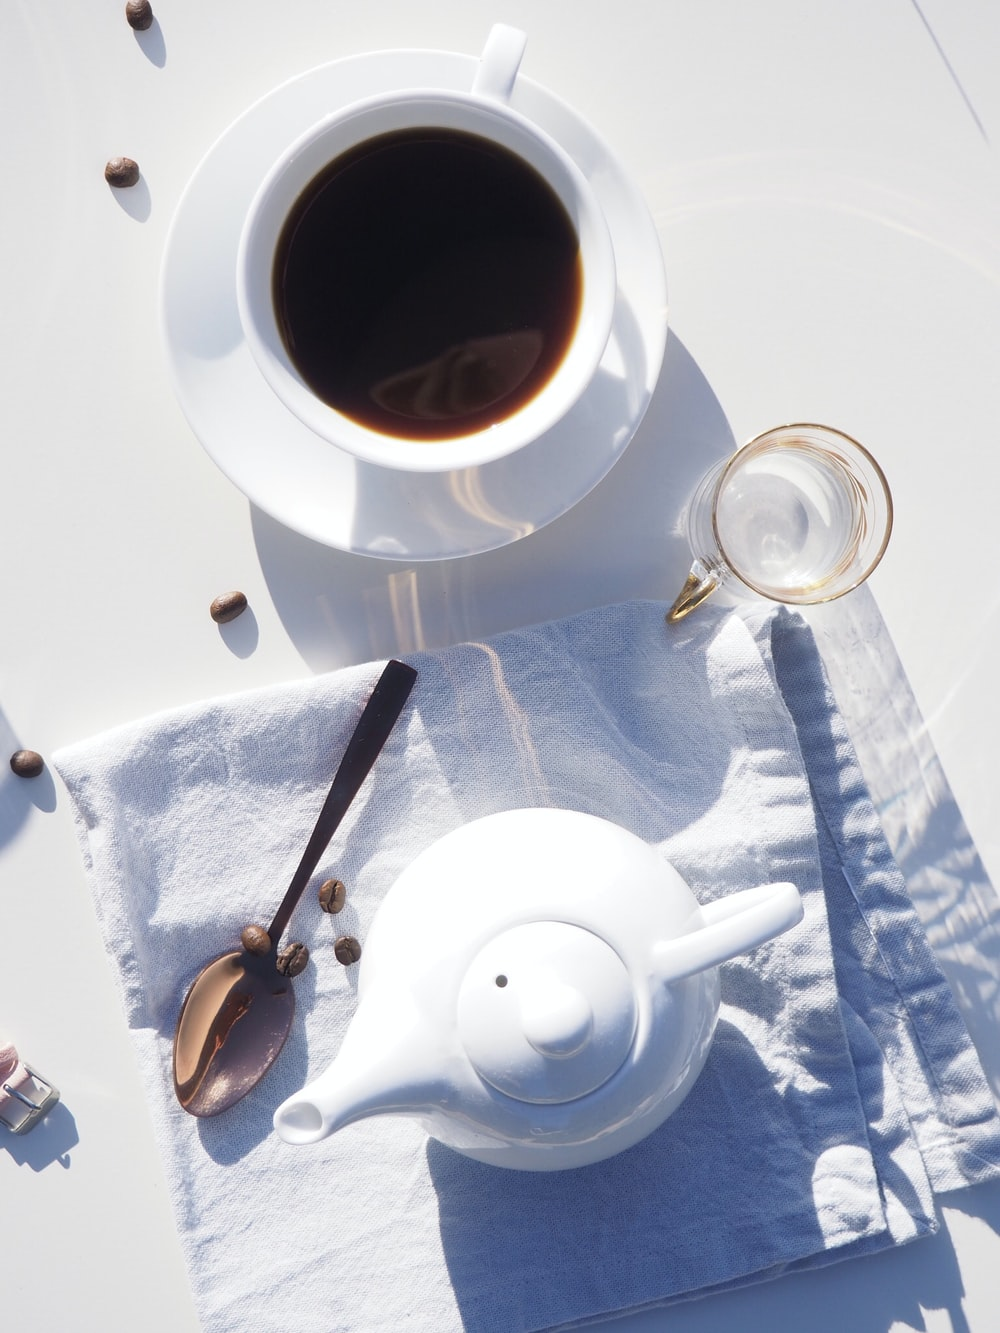 white ceramic teacup filled with coffee on white ceramic saucer beside ceramic teapot